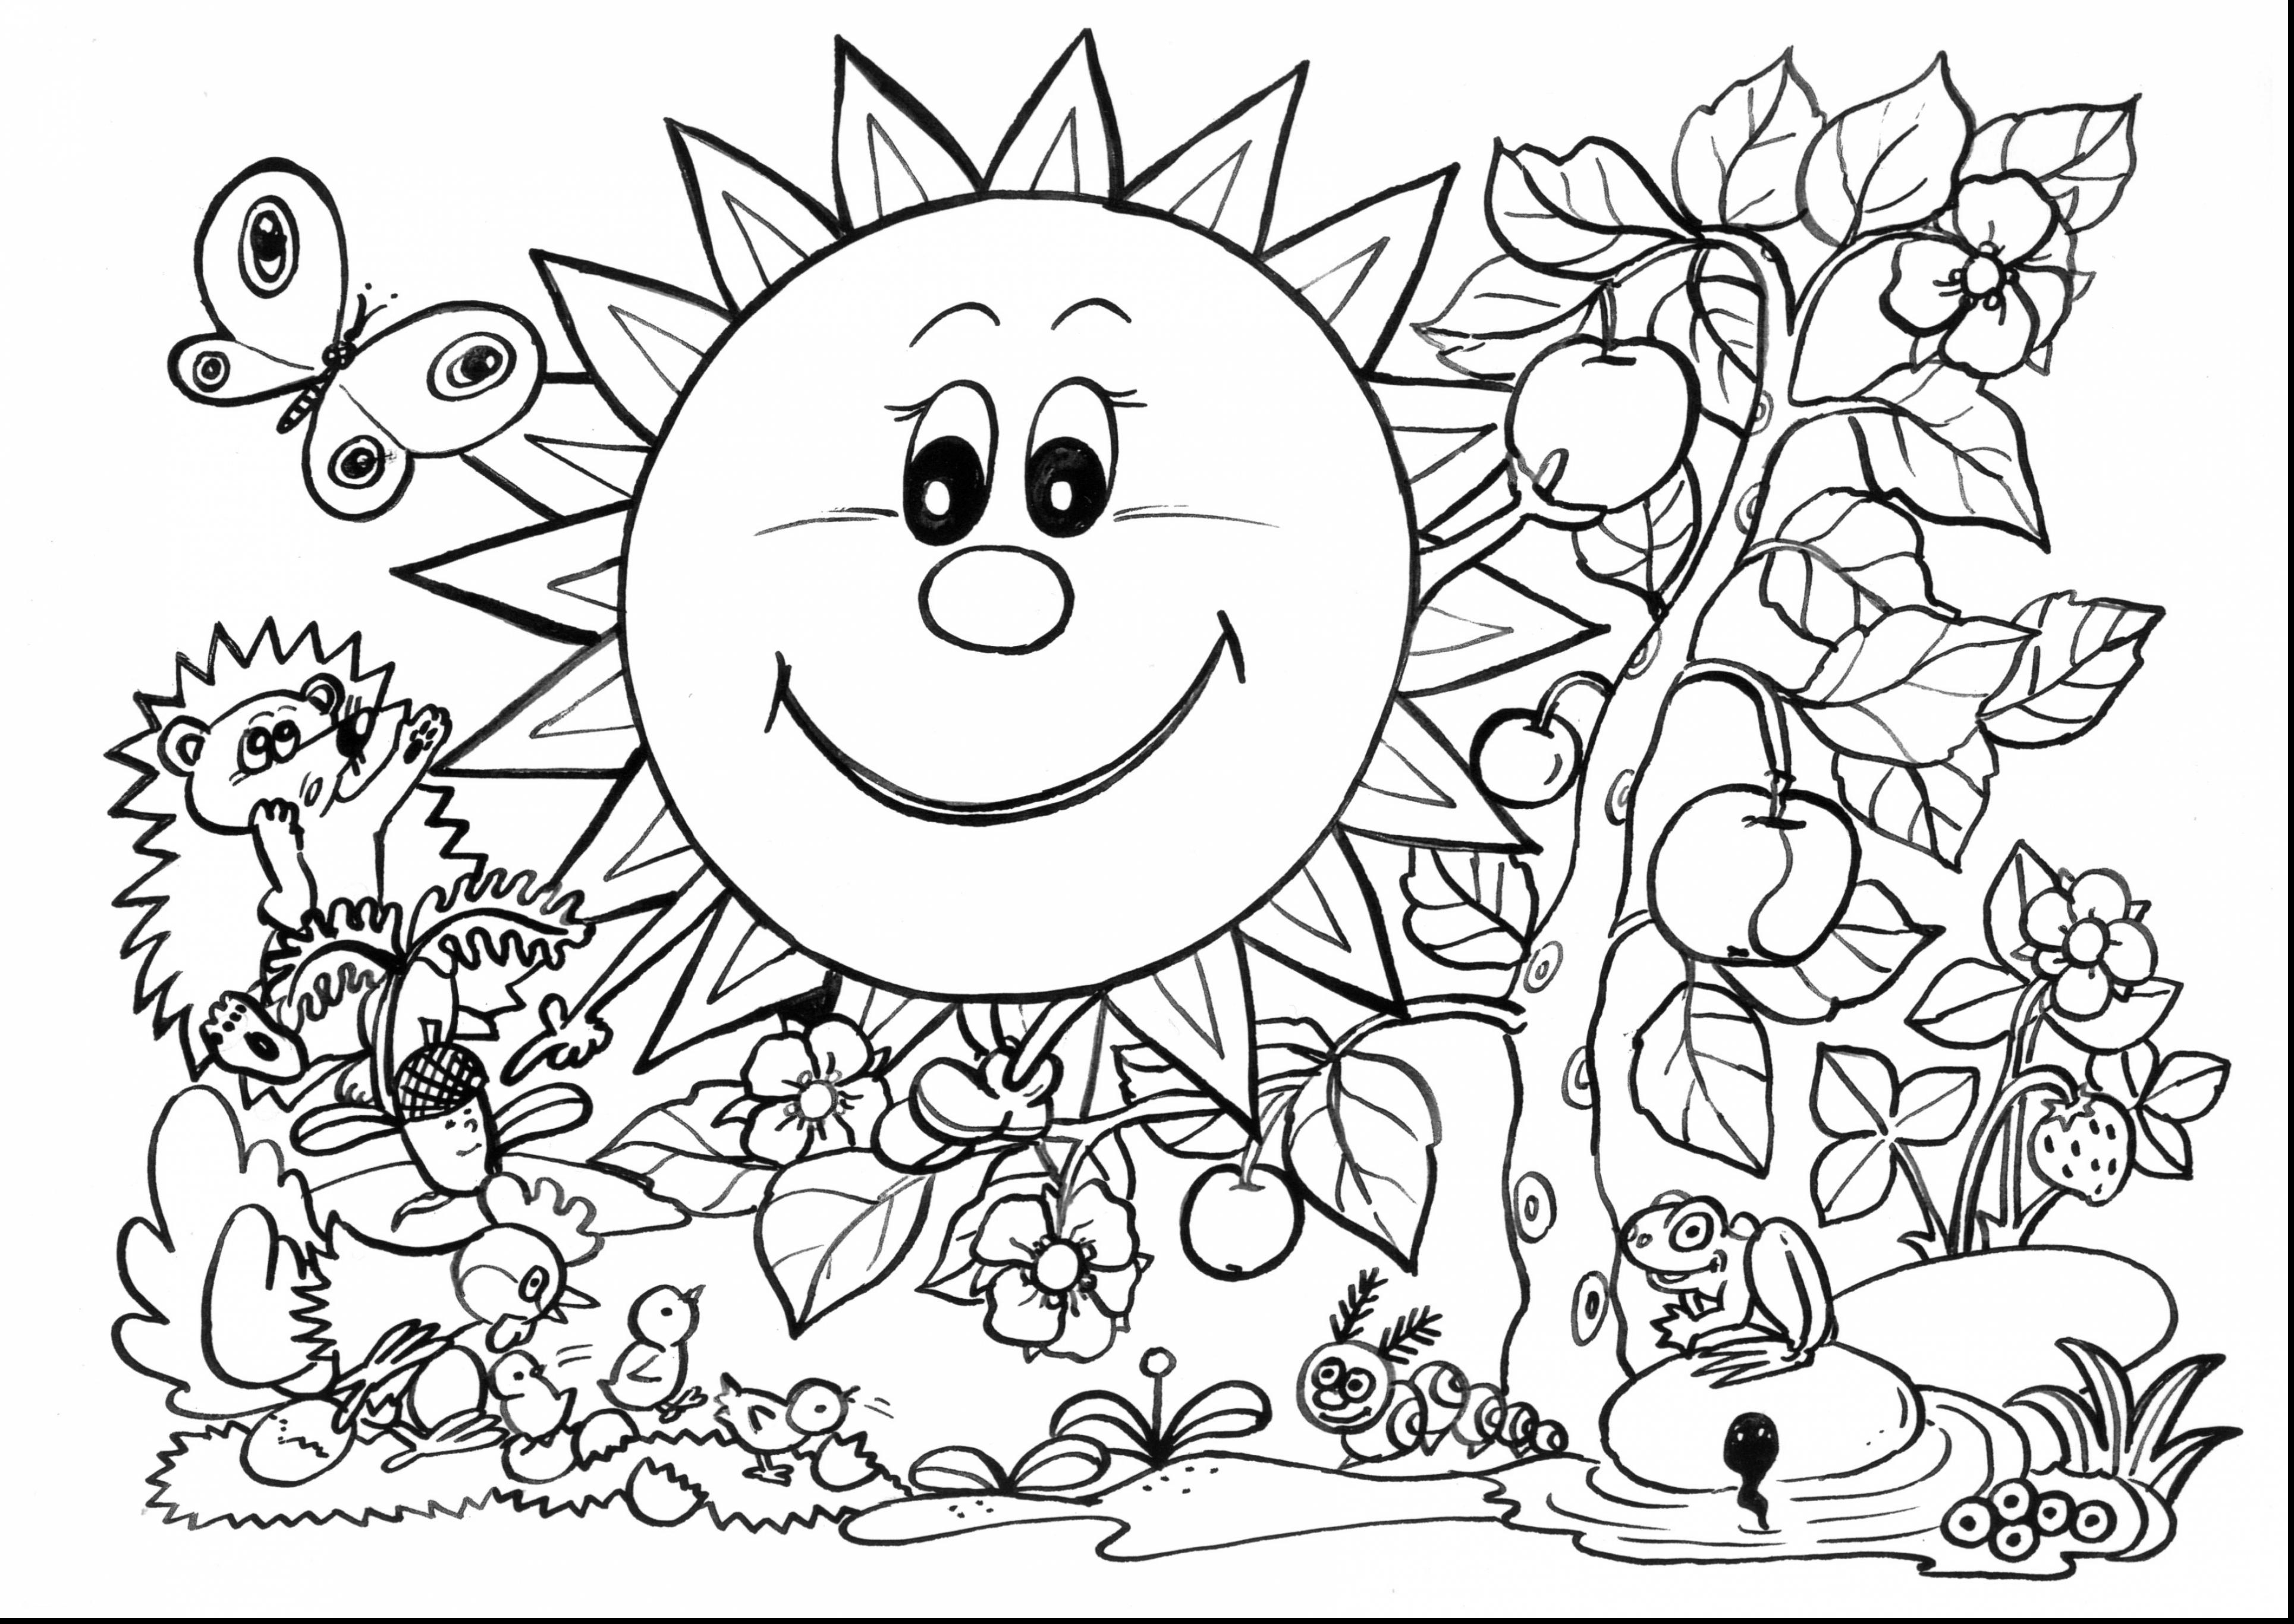 Coloring Pages ~ Free Printable Spring Flowers Coloring Pages - Spring Coloring Sheets Free Printable